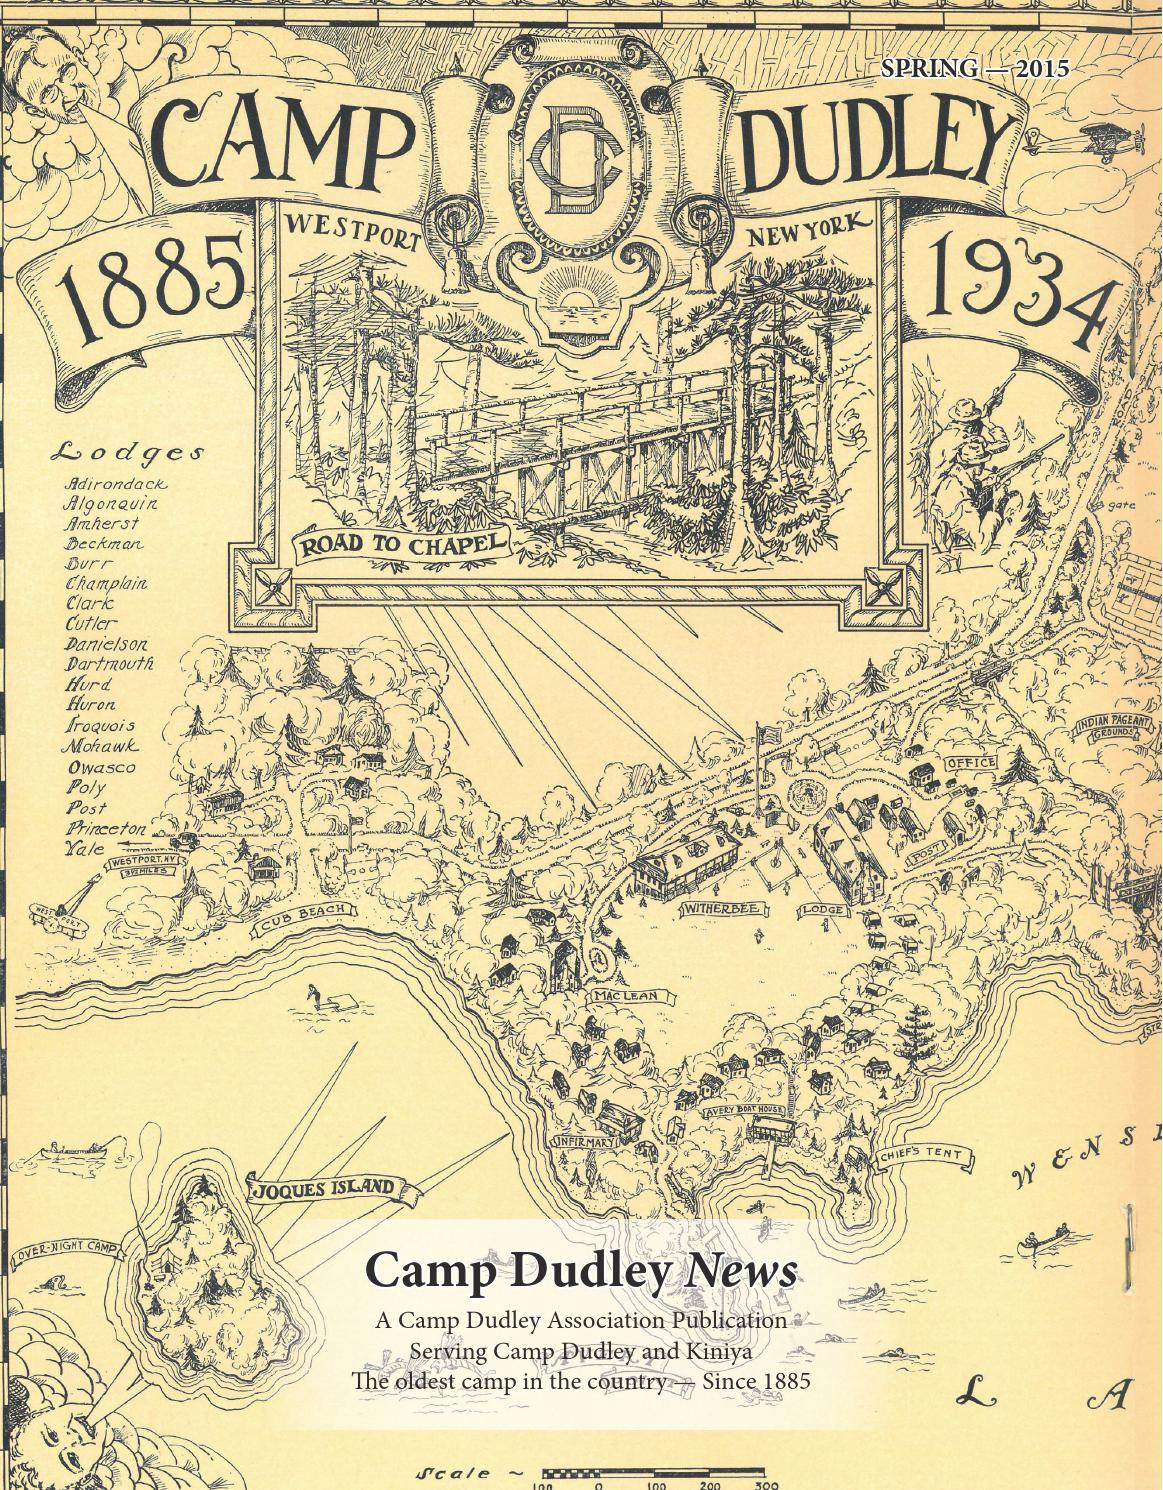 2015 Spring Camp Dudley News by Camp Dudley issuu